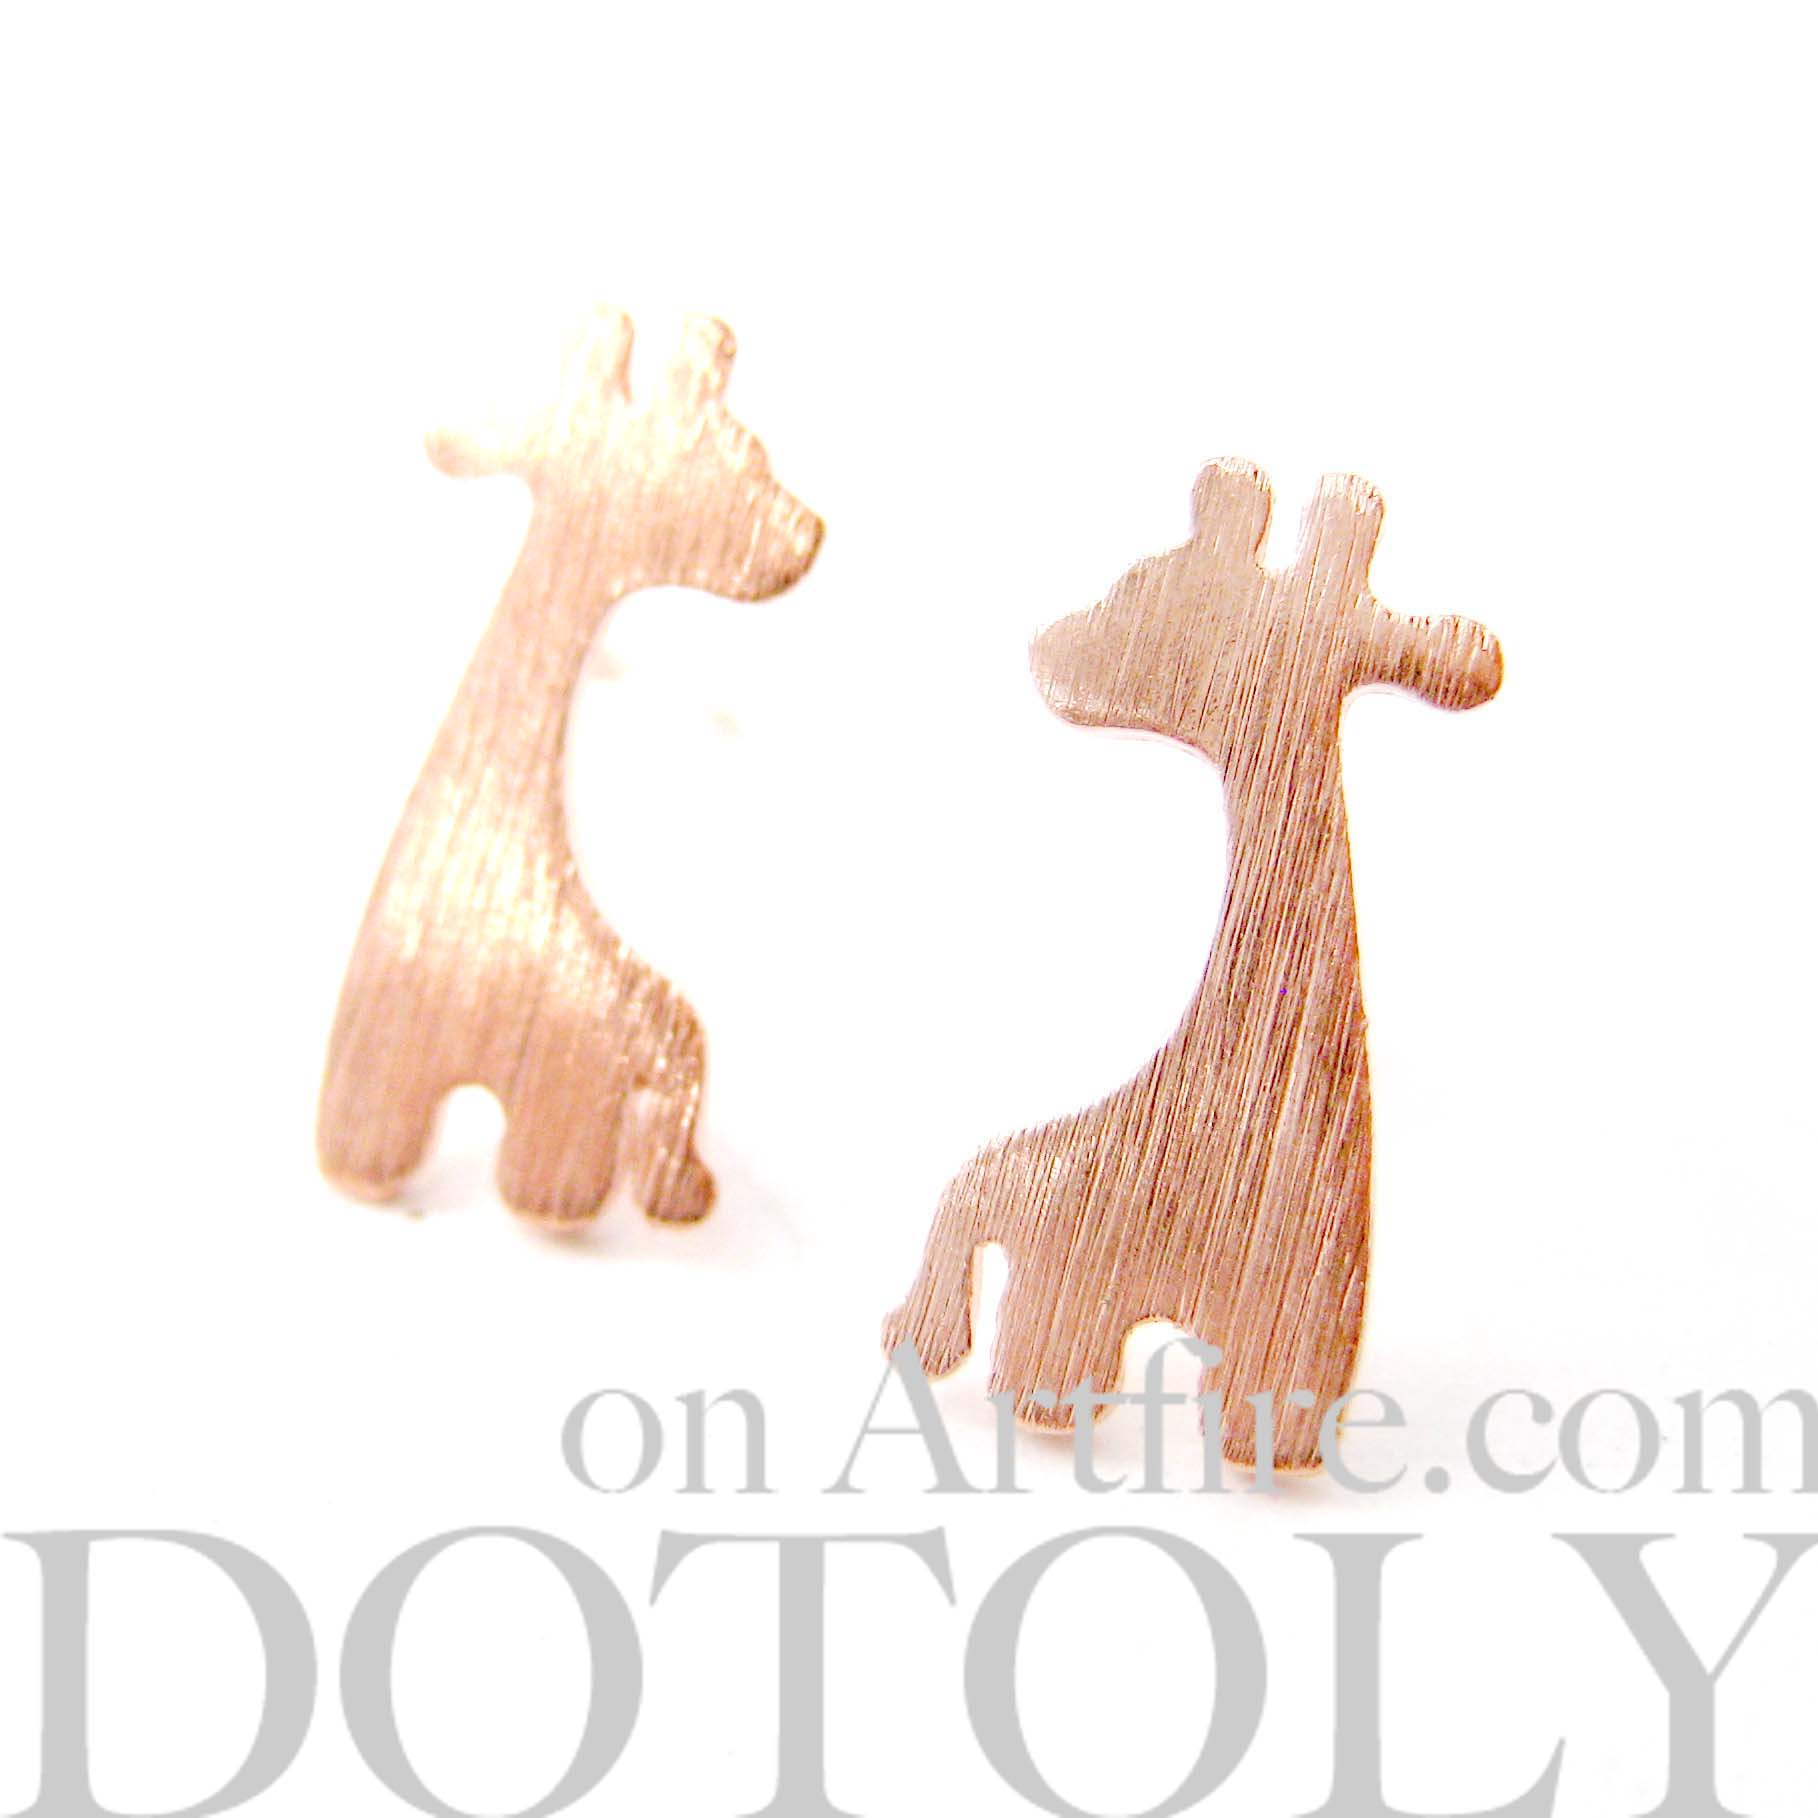 giraffe-shape-animal-stud-earrings-in-copper-with-allergy-free-earring-posts